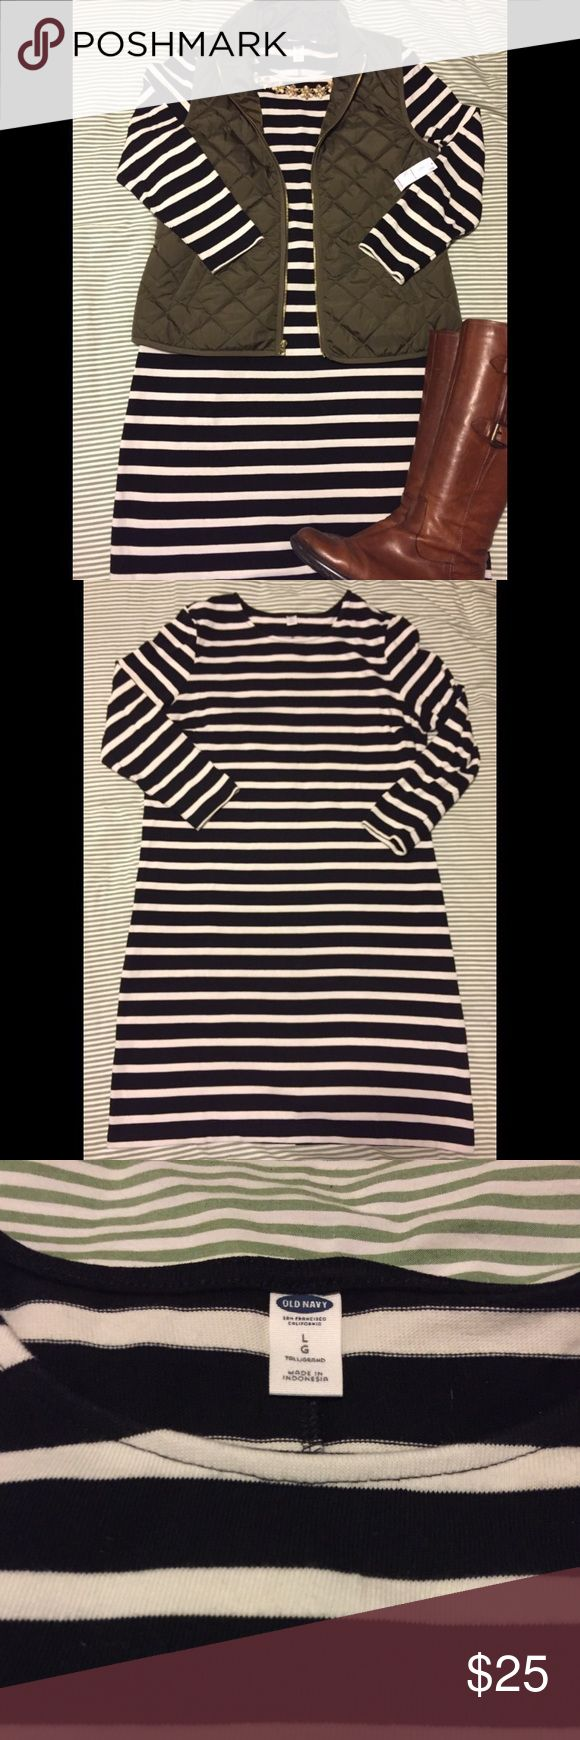 NWT Old Navy Striped Dress - Size Large Tall This black and cream striped t-shirt dress is made of thick 100% cotton. Knee length with 3/4 sleeves. Old Navy Dresses Midi